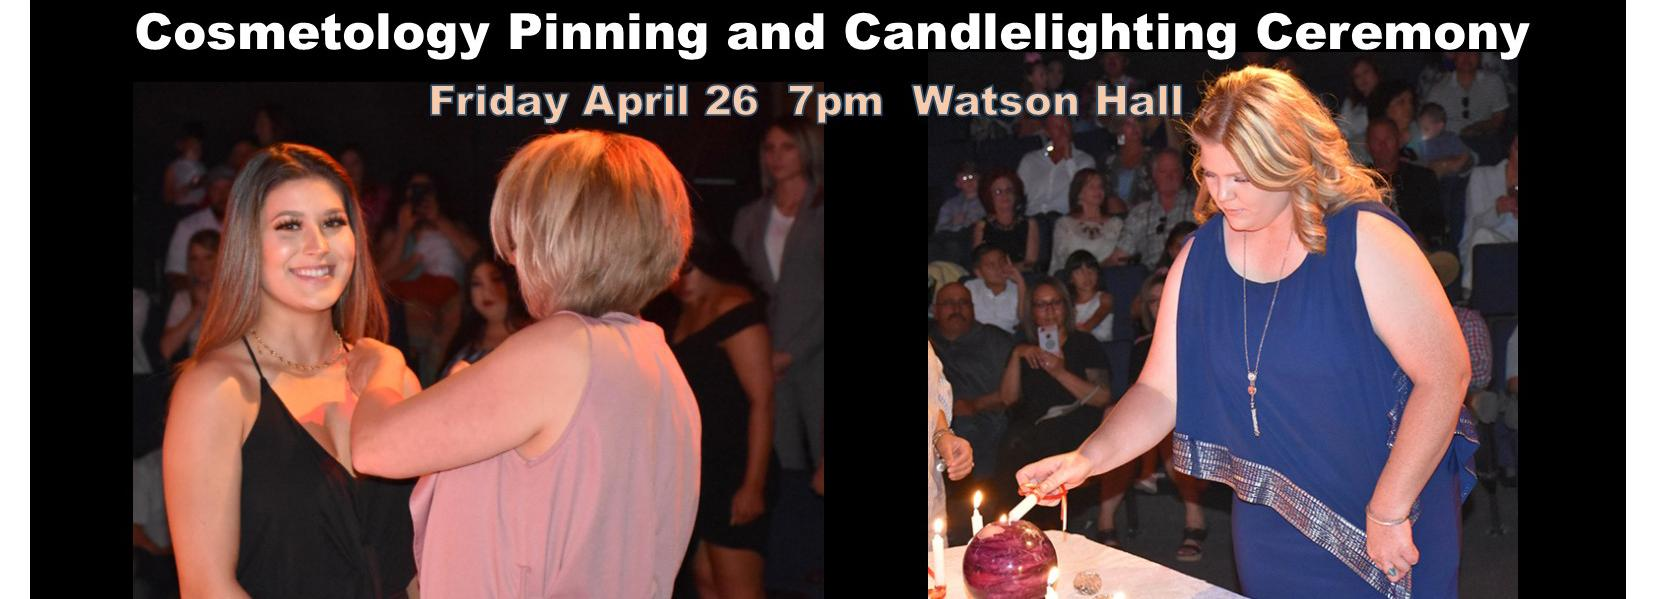 Cosmetology Pinning and Candlelighting Ceremony